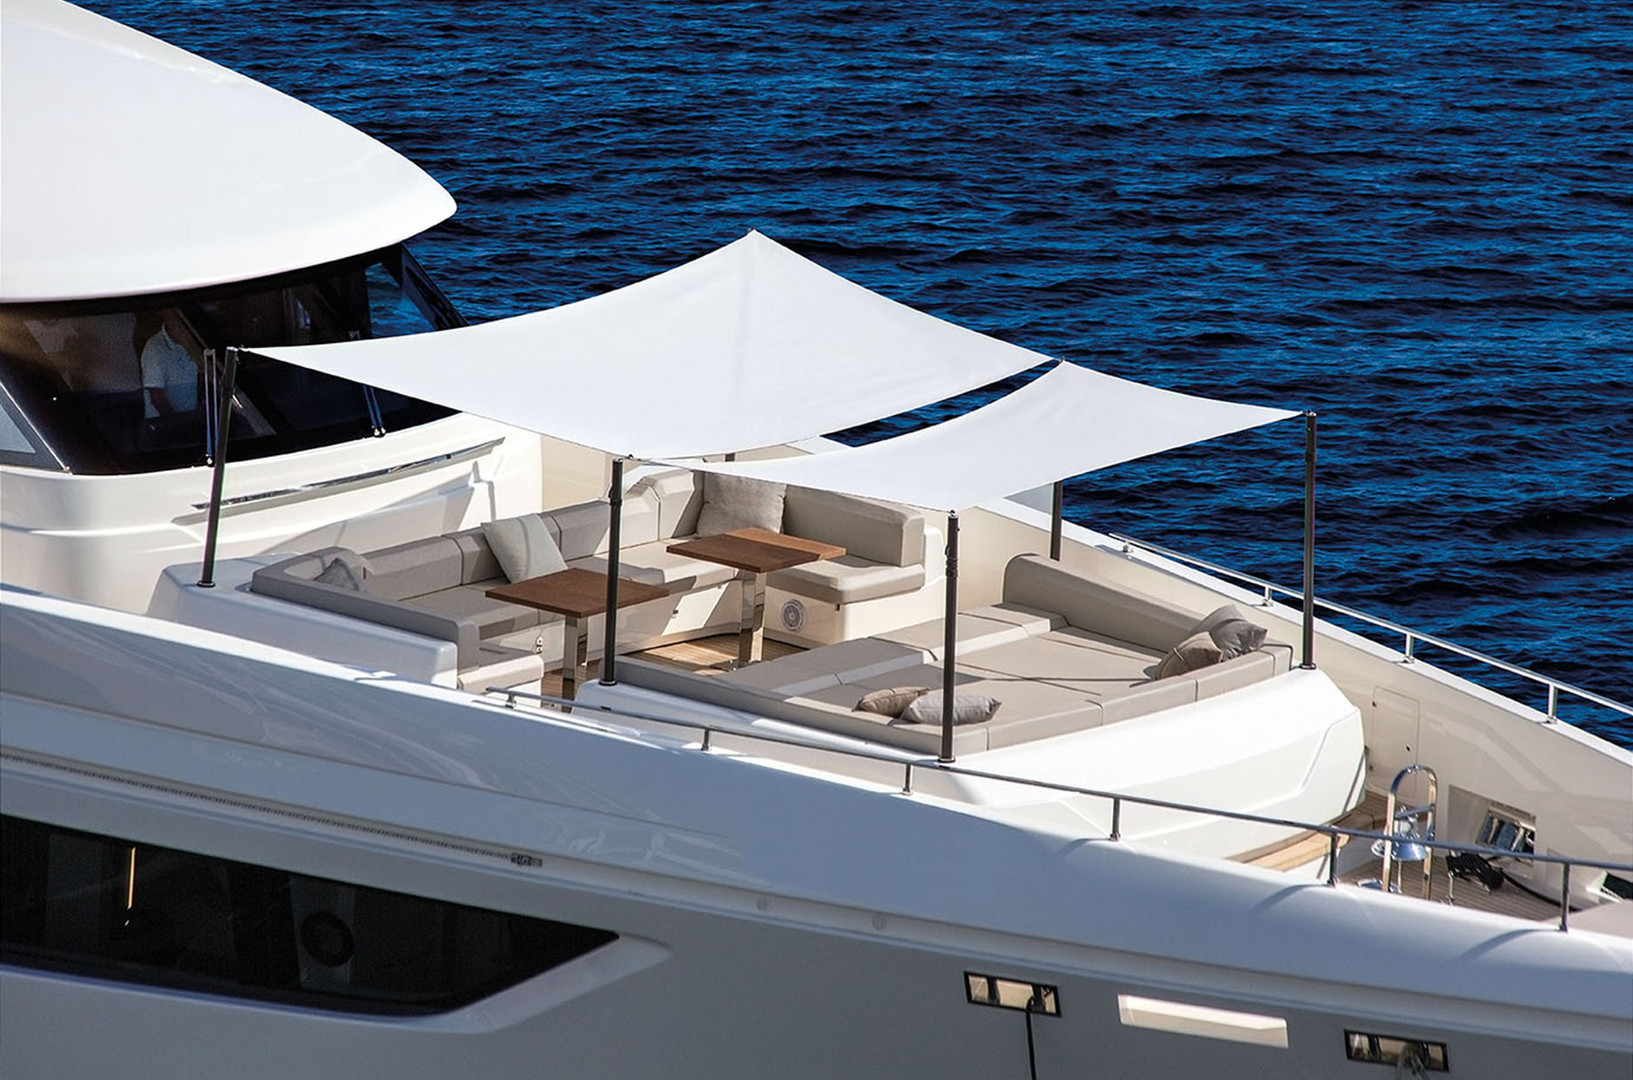 Yacht DECEMBER SIX - superb foredeck seating, lounging and tables. Absolutely ideal for entertaining during charter